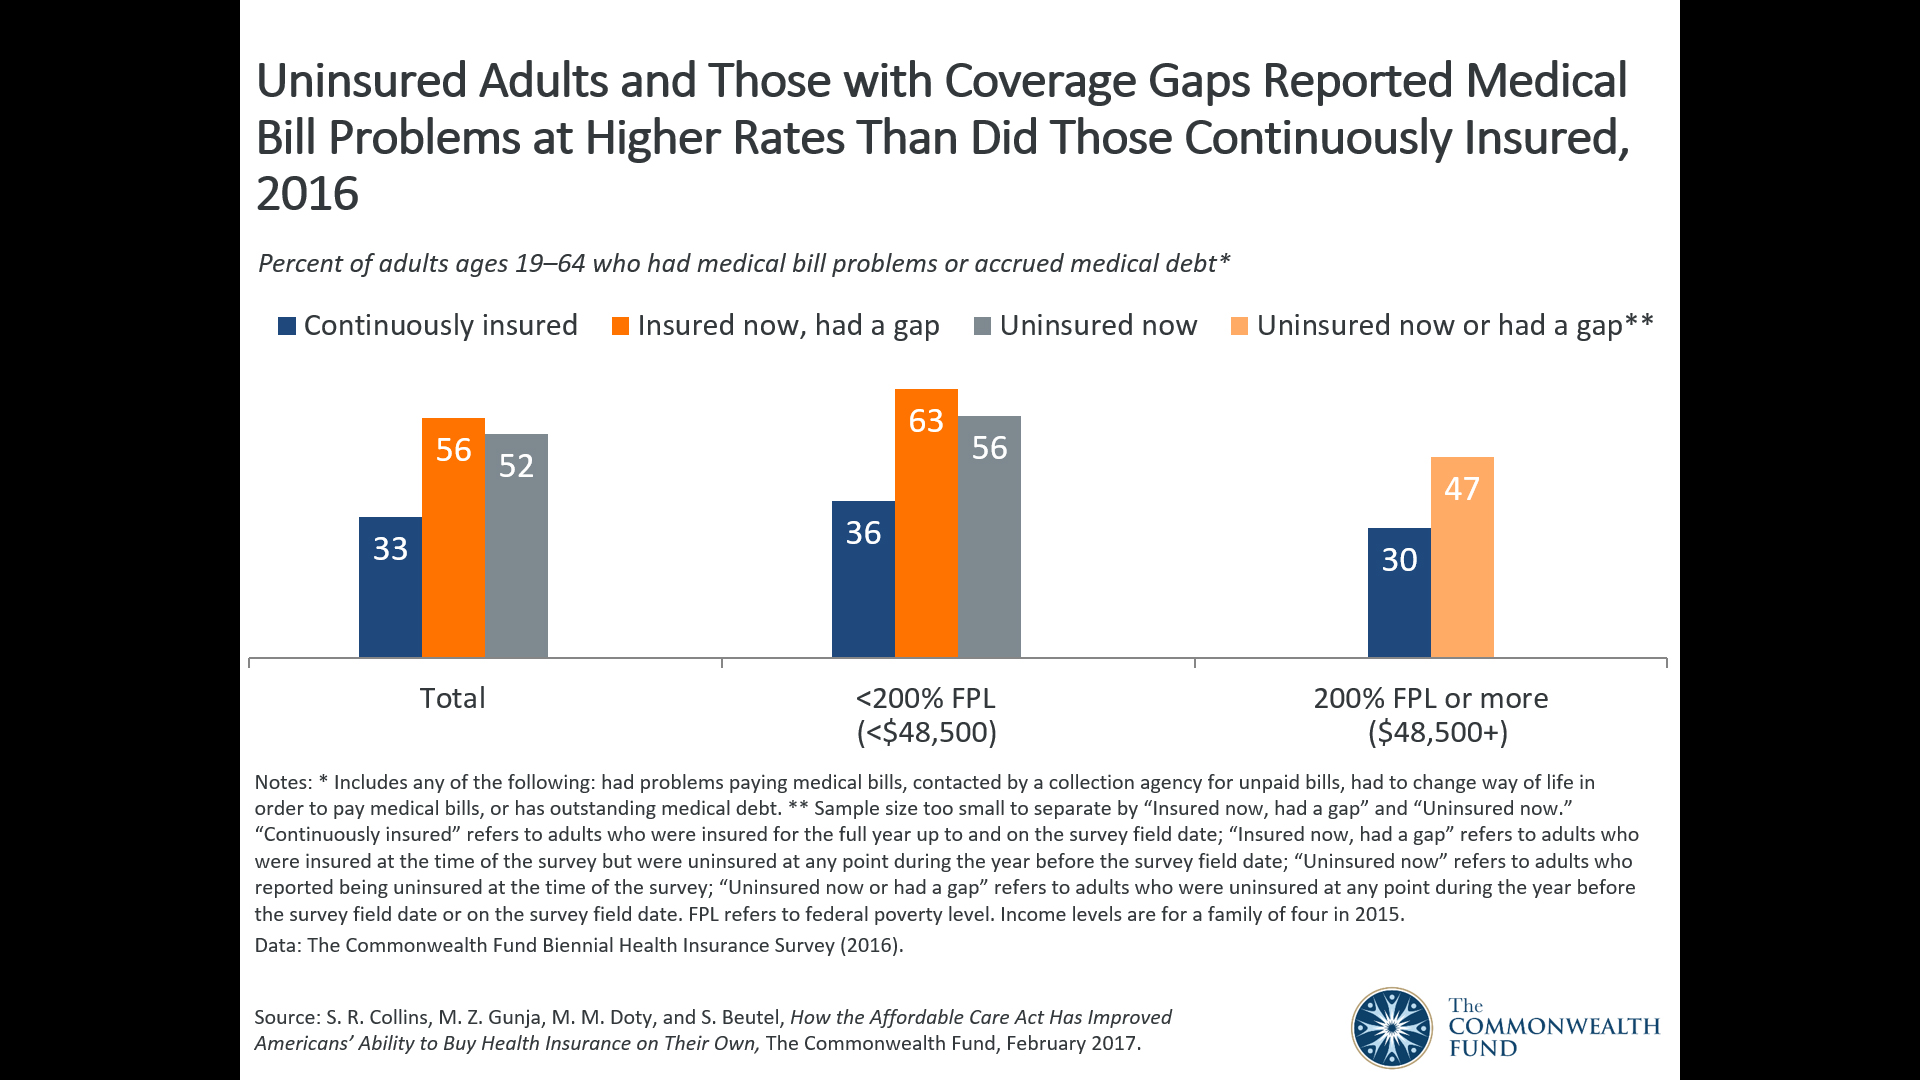 Uninsured Adults and Those with Coverage Gaps Reported Medical Bill  Problems at Higher Rates Than Did Those Continuously Insured, 2016